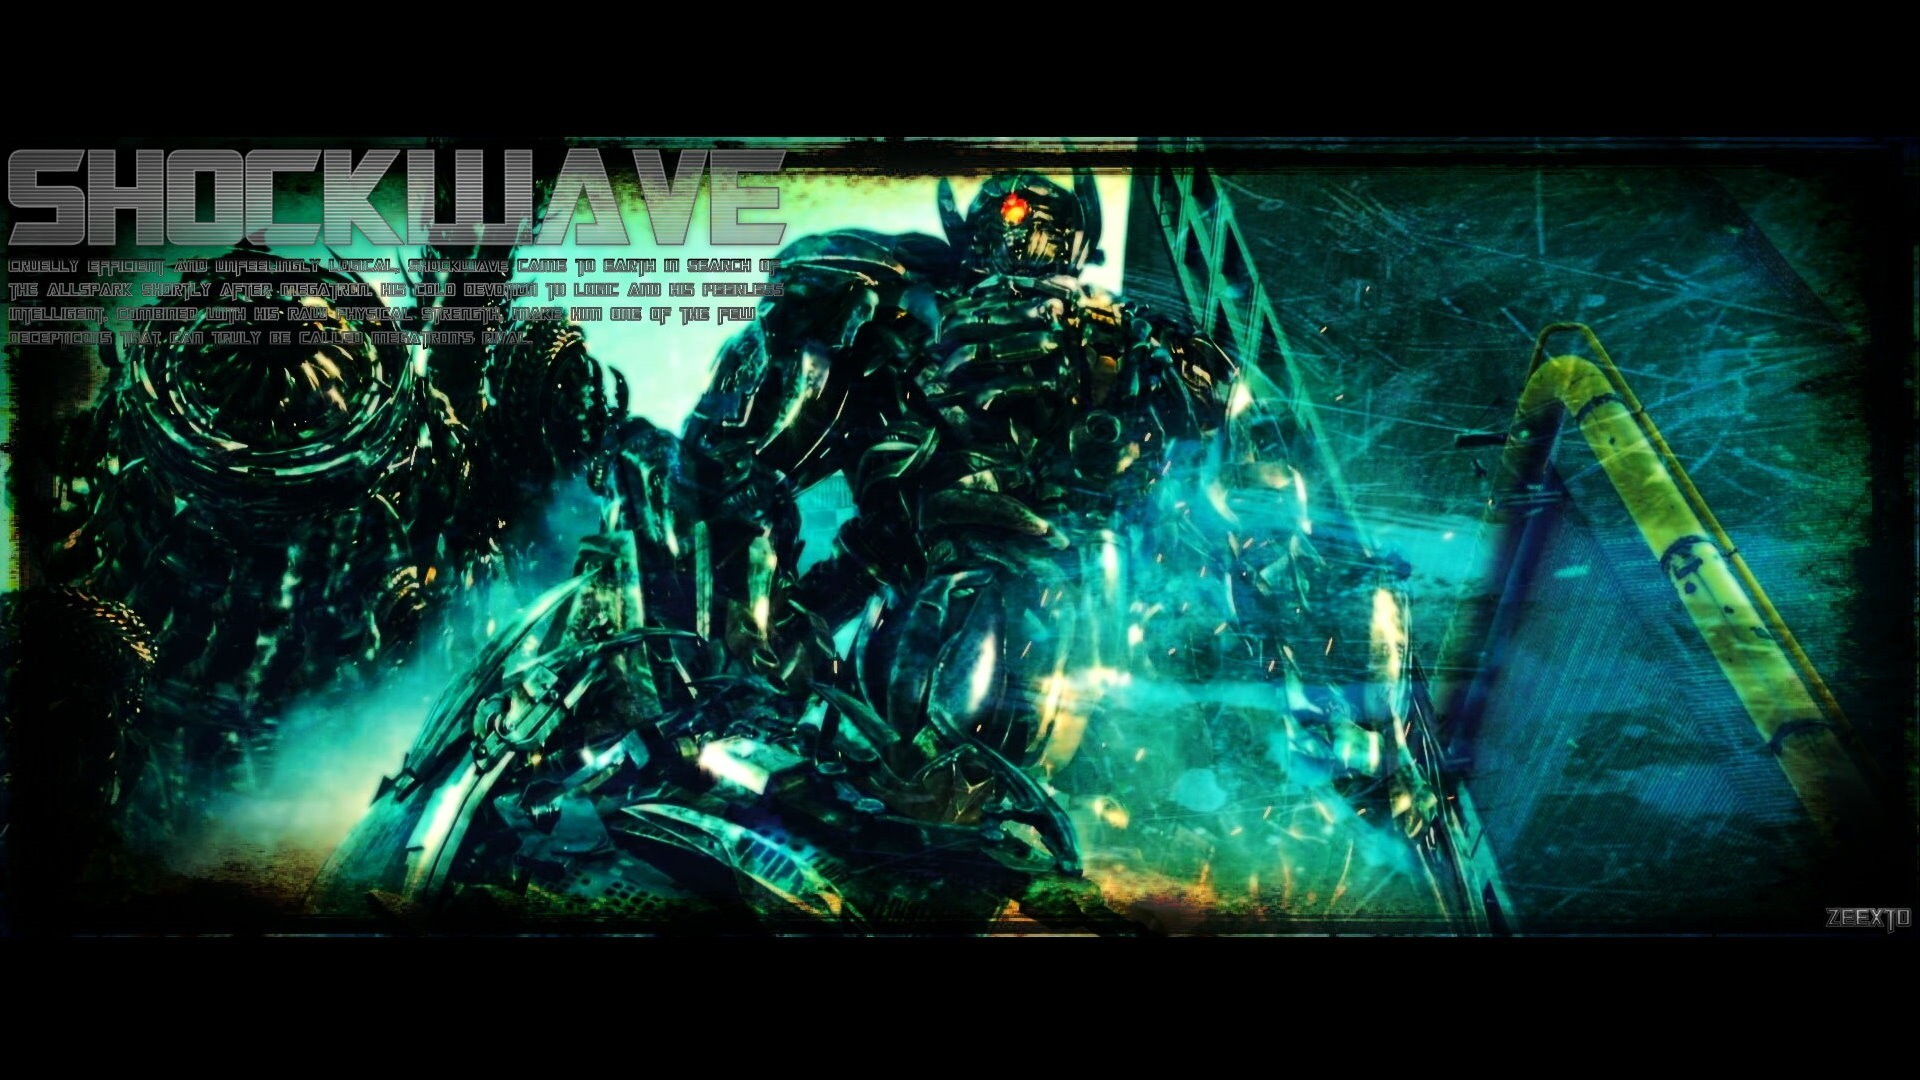 dark moon Robots Transformers shockwave HD Wallpaper